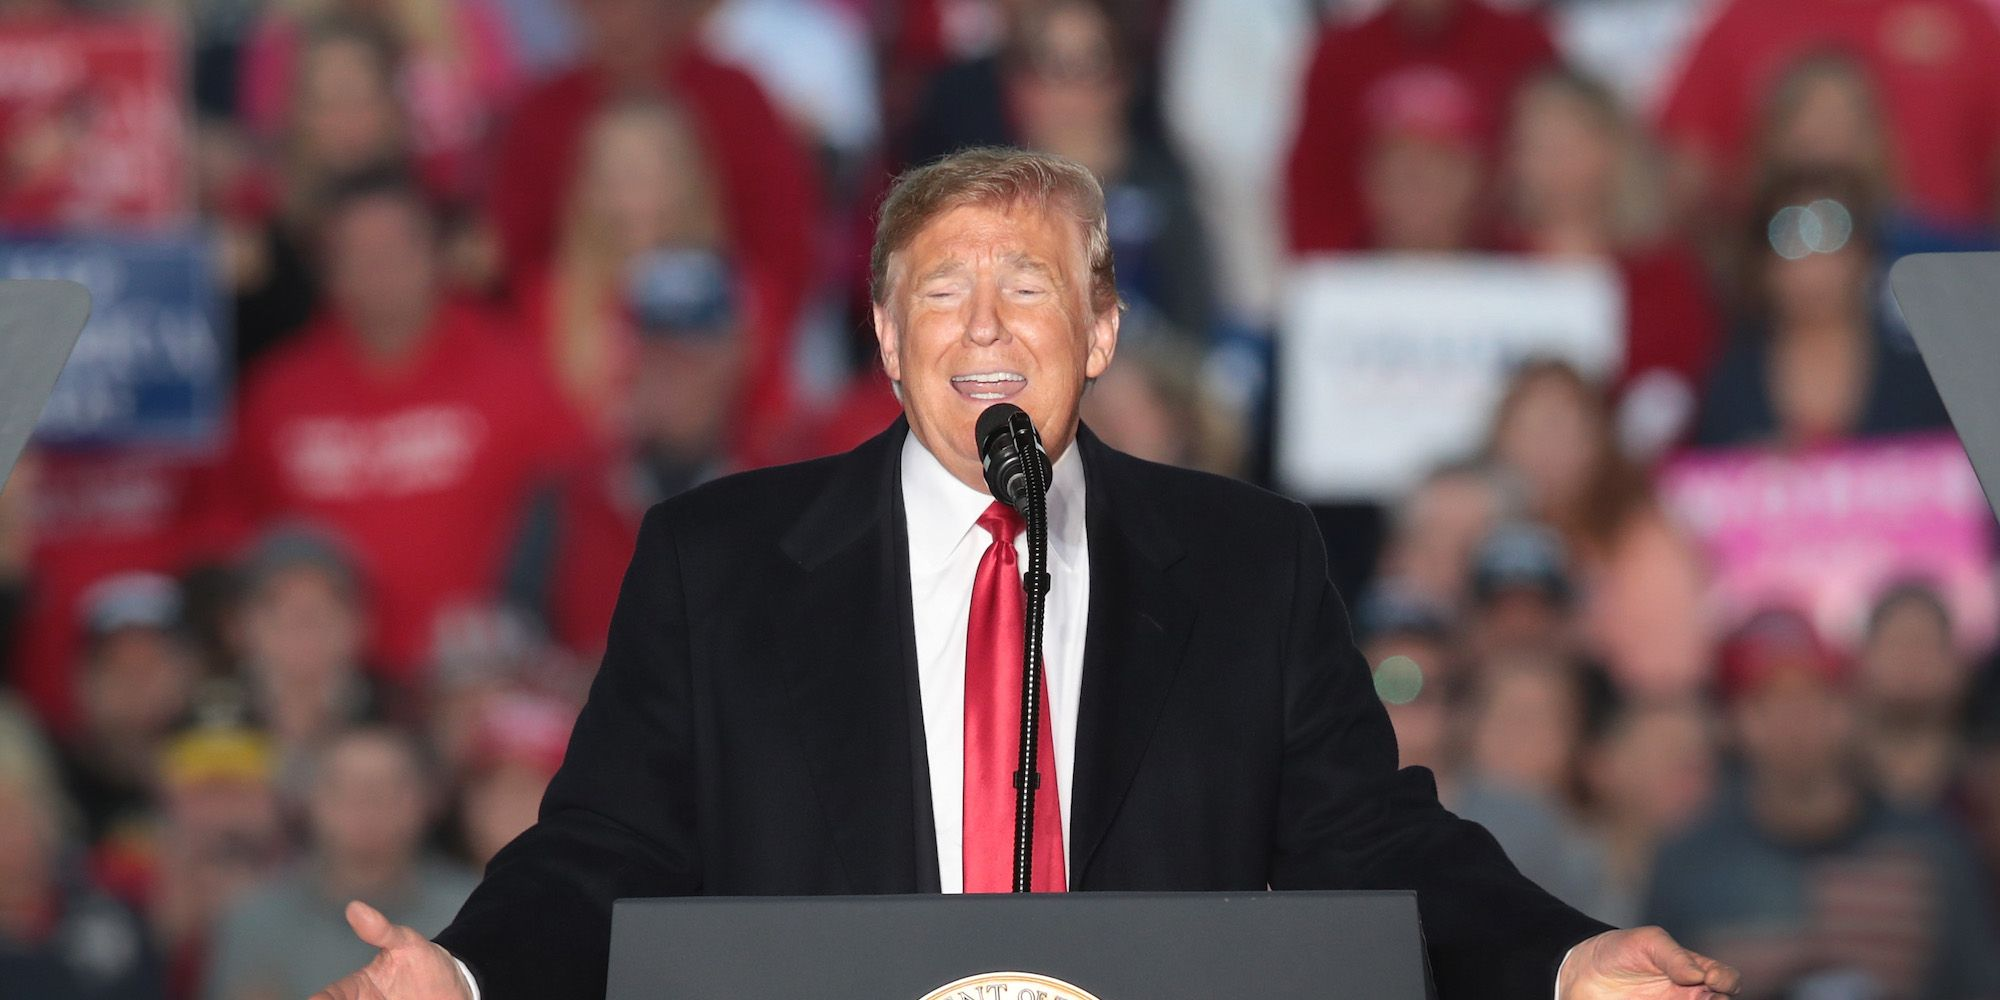 Donald Trump Holds MAGA Campaign Rally In Southern Illinois Ahead Of Midterm Elections